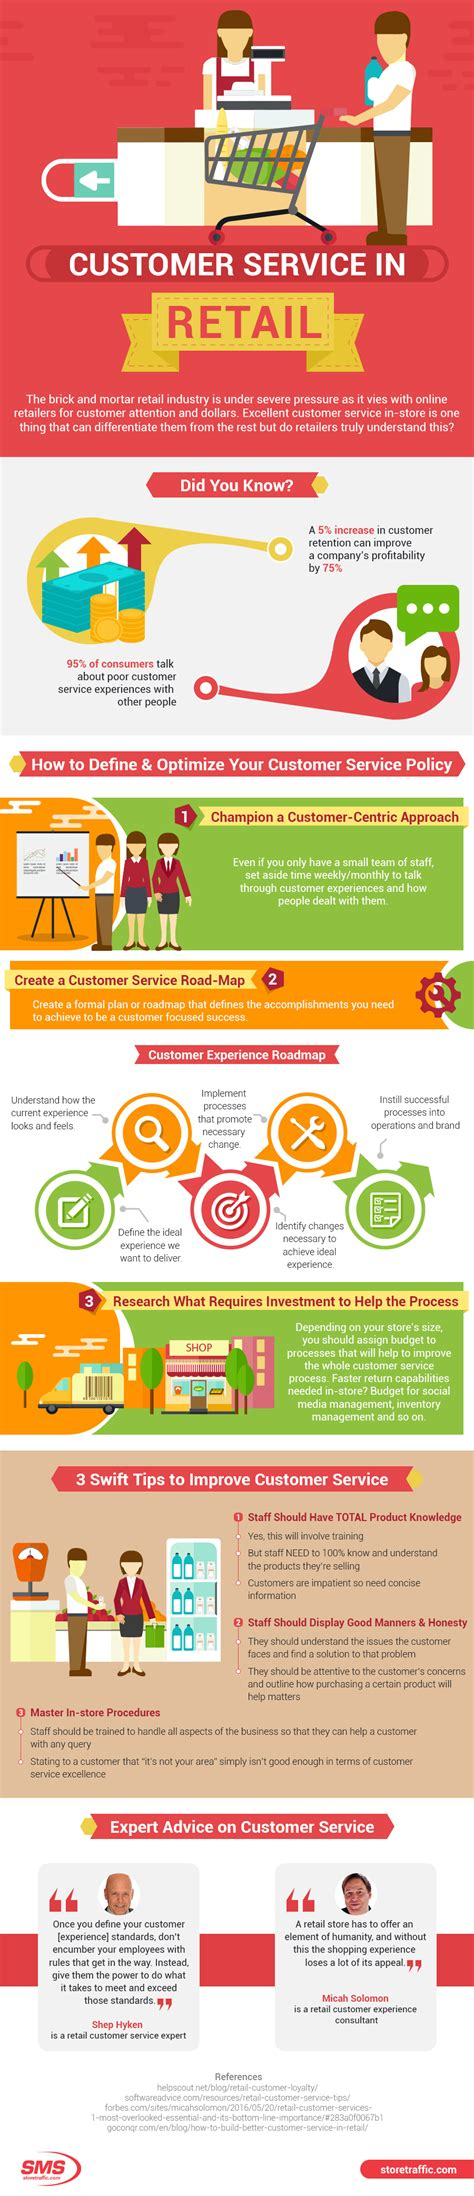 Retail Detail Business 101 Customer Service Is Paramount Second City Style Fashion by Customer Service Retail 101 Infographic Succeeding In